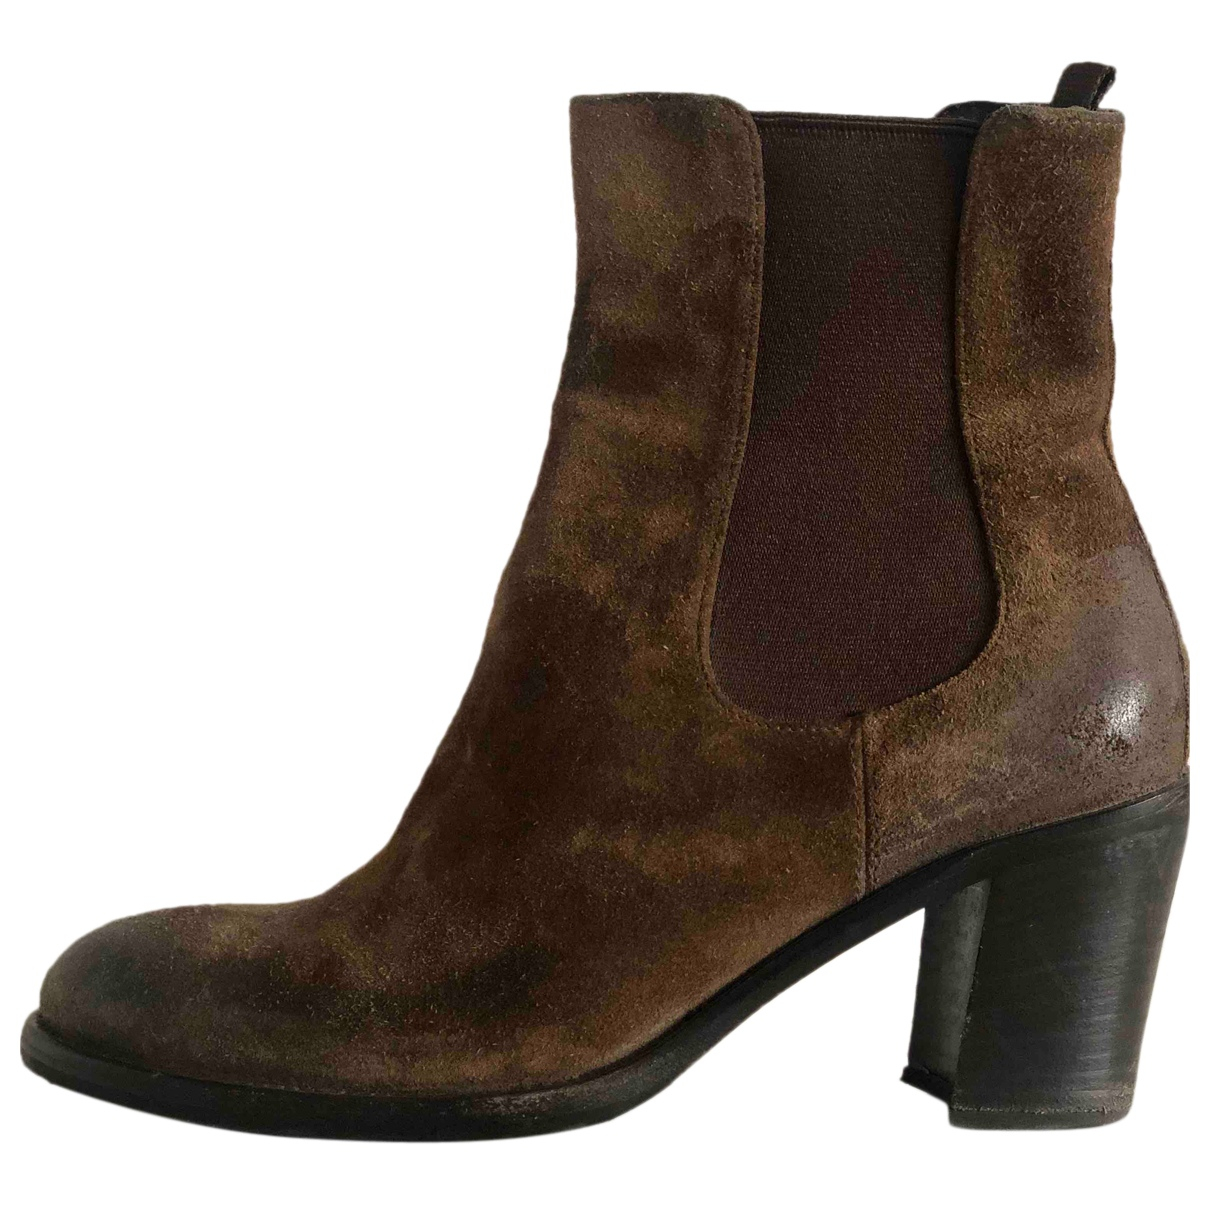 Prada N Brown Suede Boots for Women 36 IT